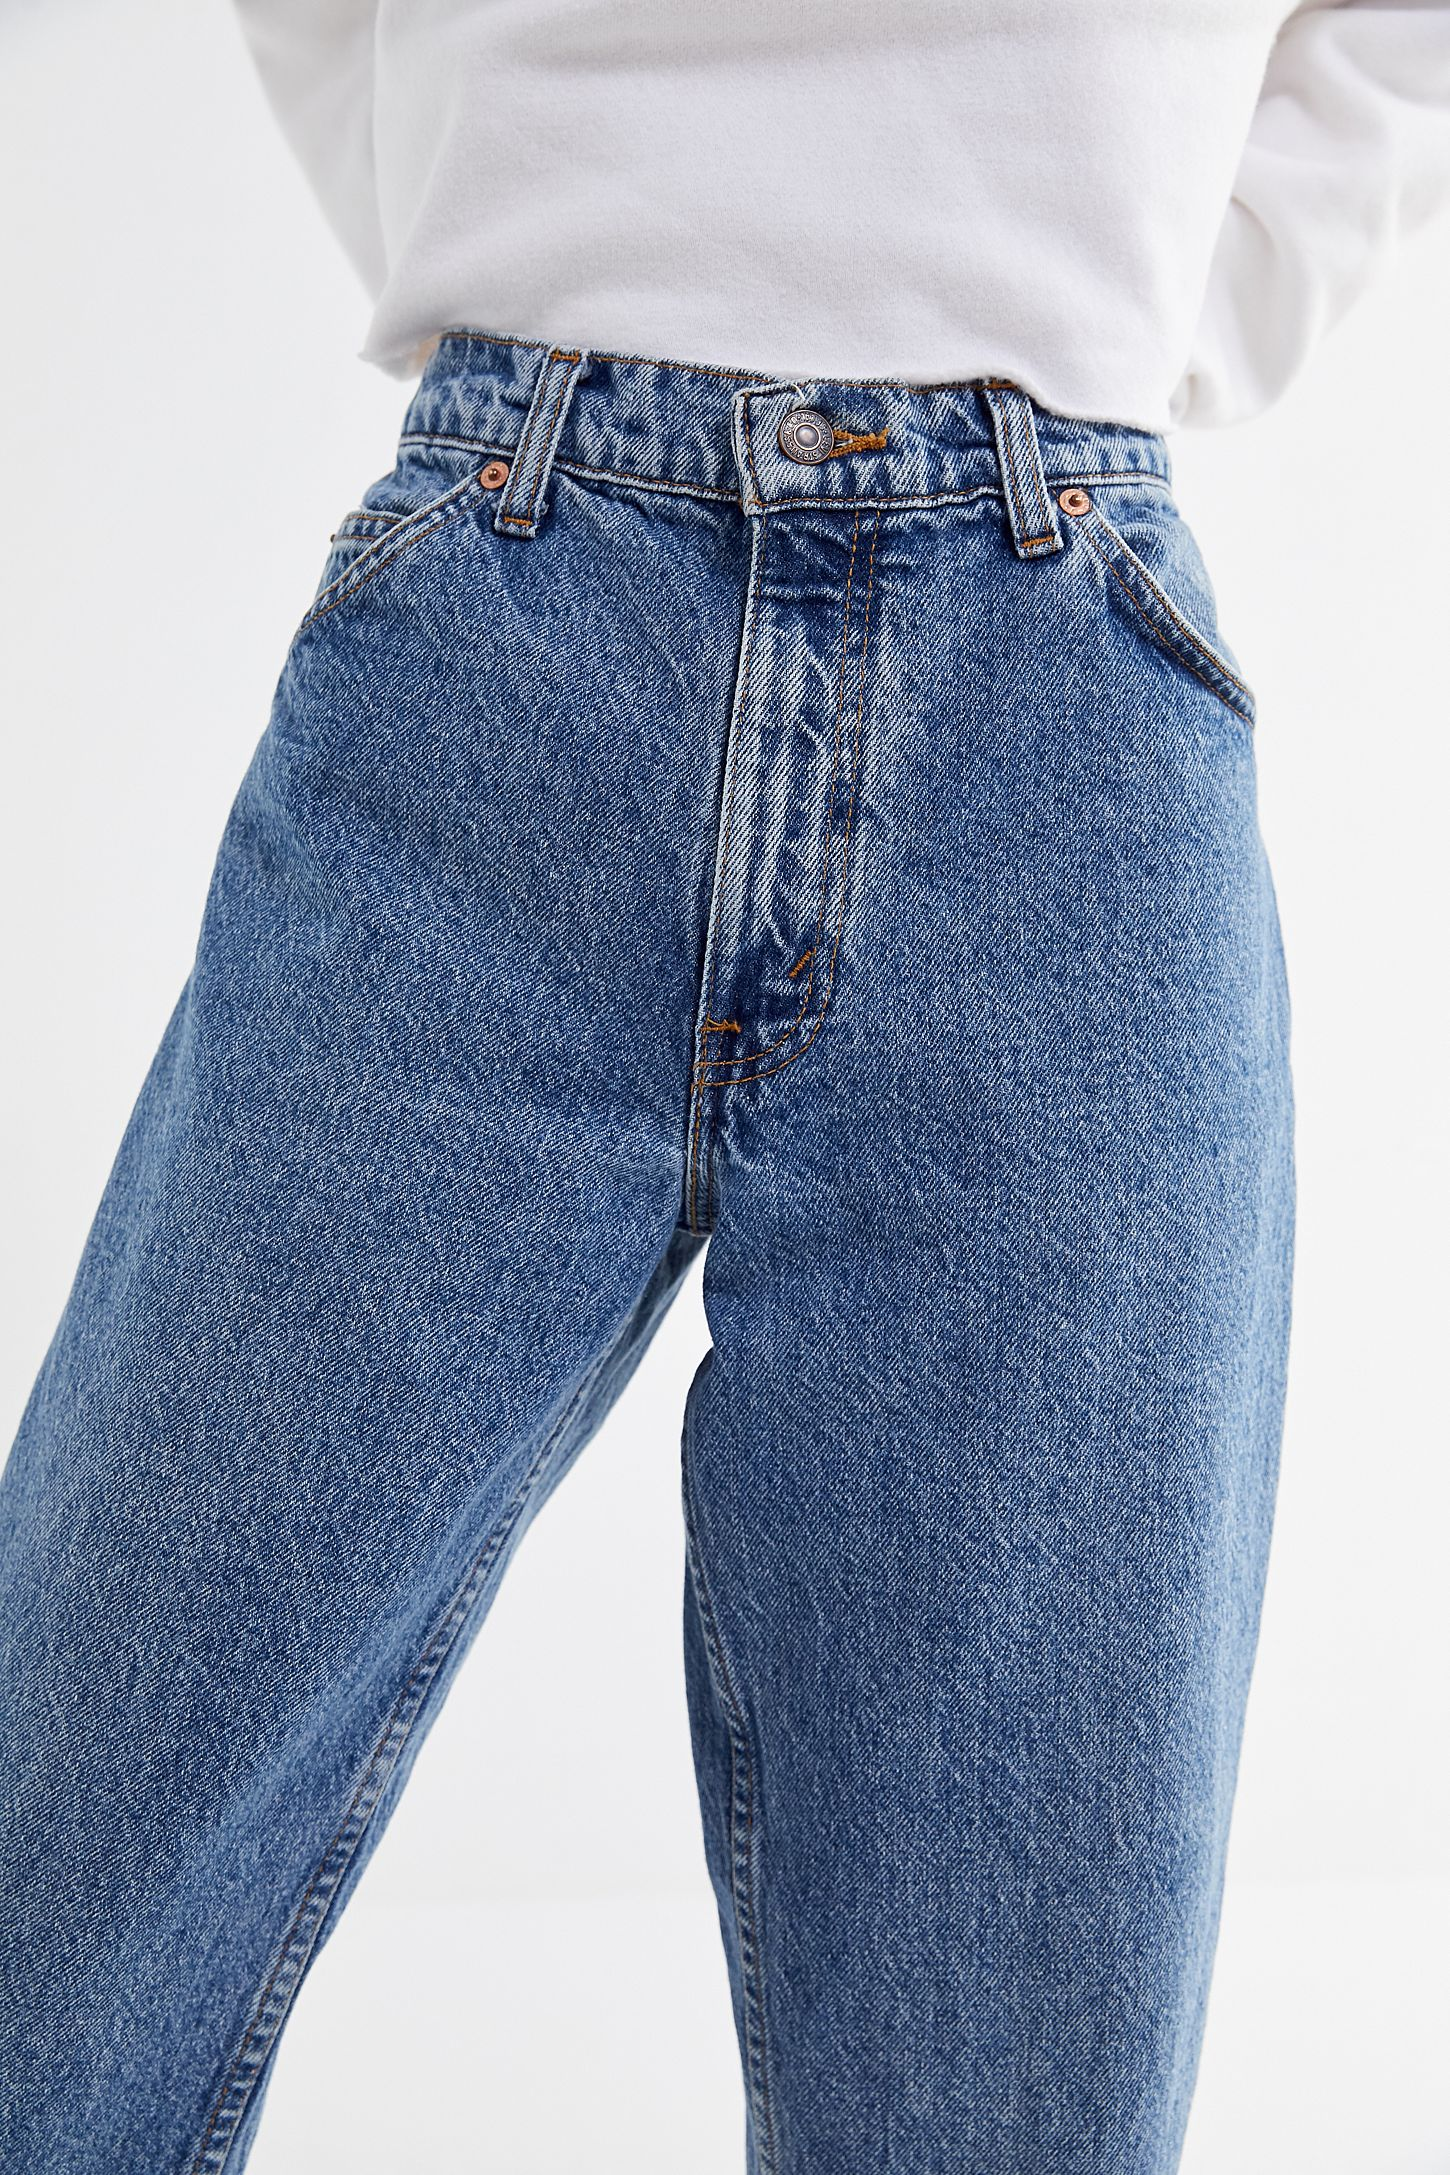 202677b6 Vintage Levi's 550 Straight Jean | Urban Outfitters